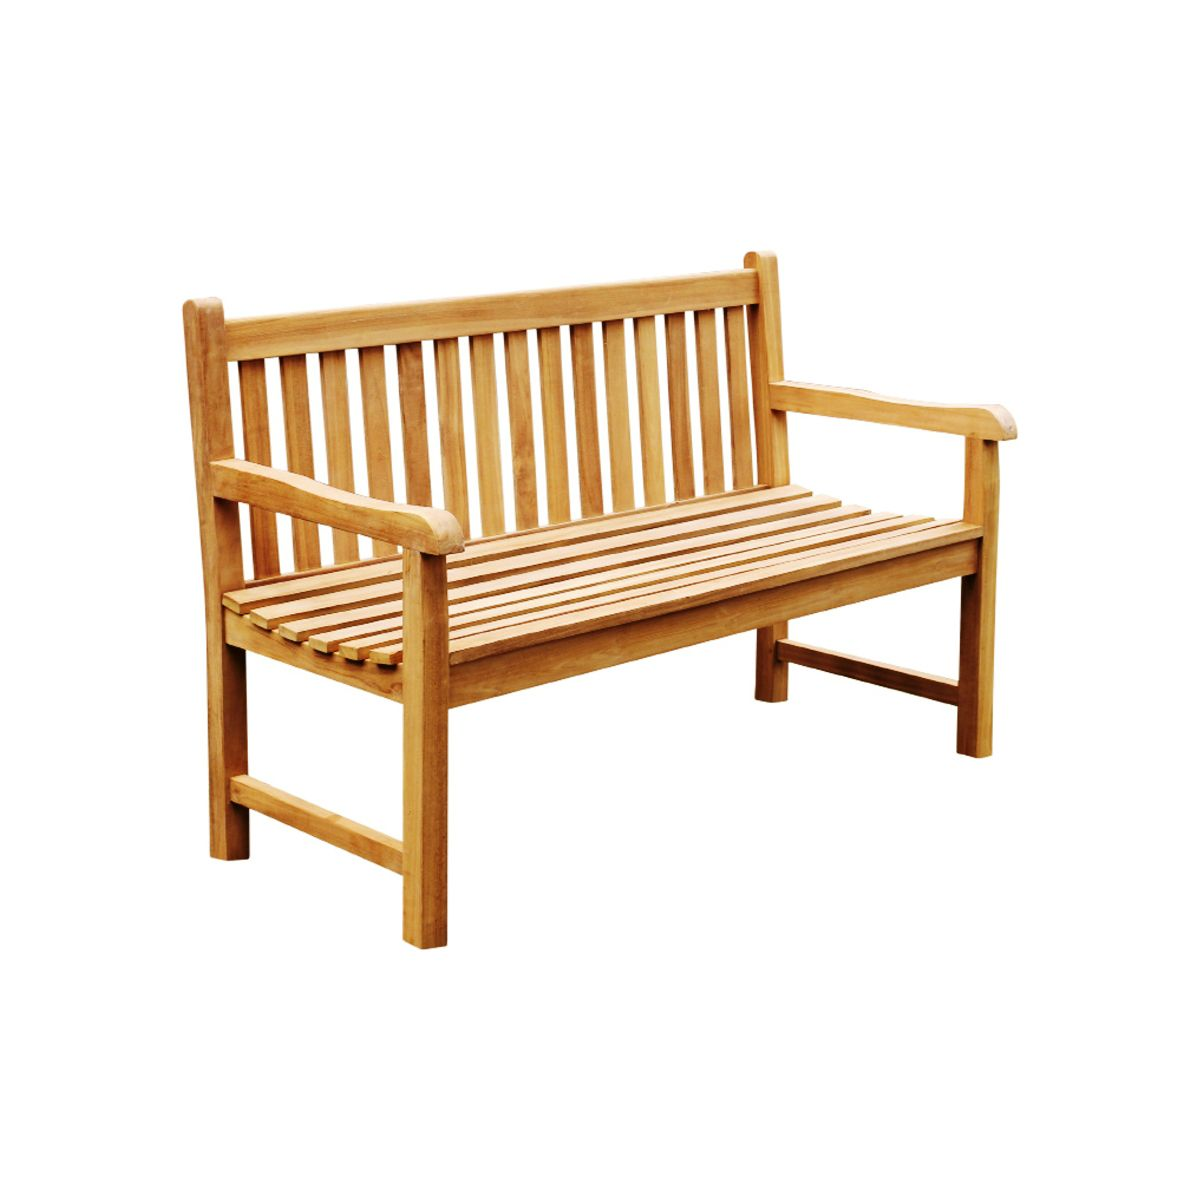 Garden outdoor bench made of solid teak wood indonesia furniture outdoor garden chair outdoorchair outdoorfurniture teakfurniture outdoorteak